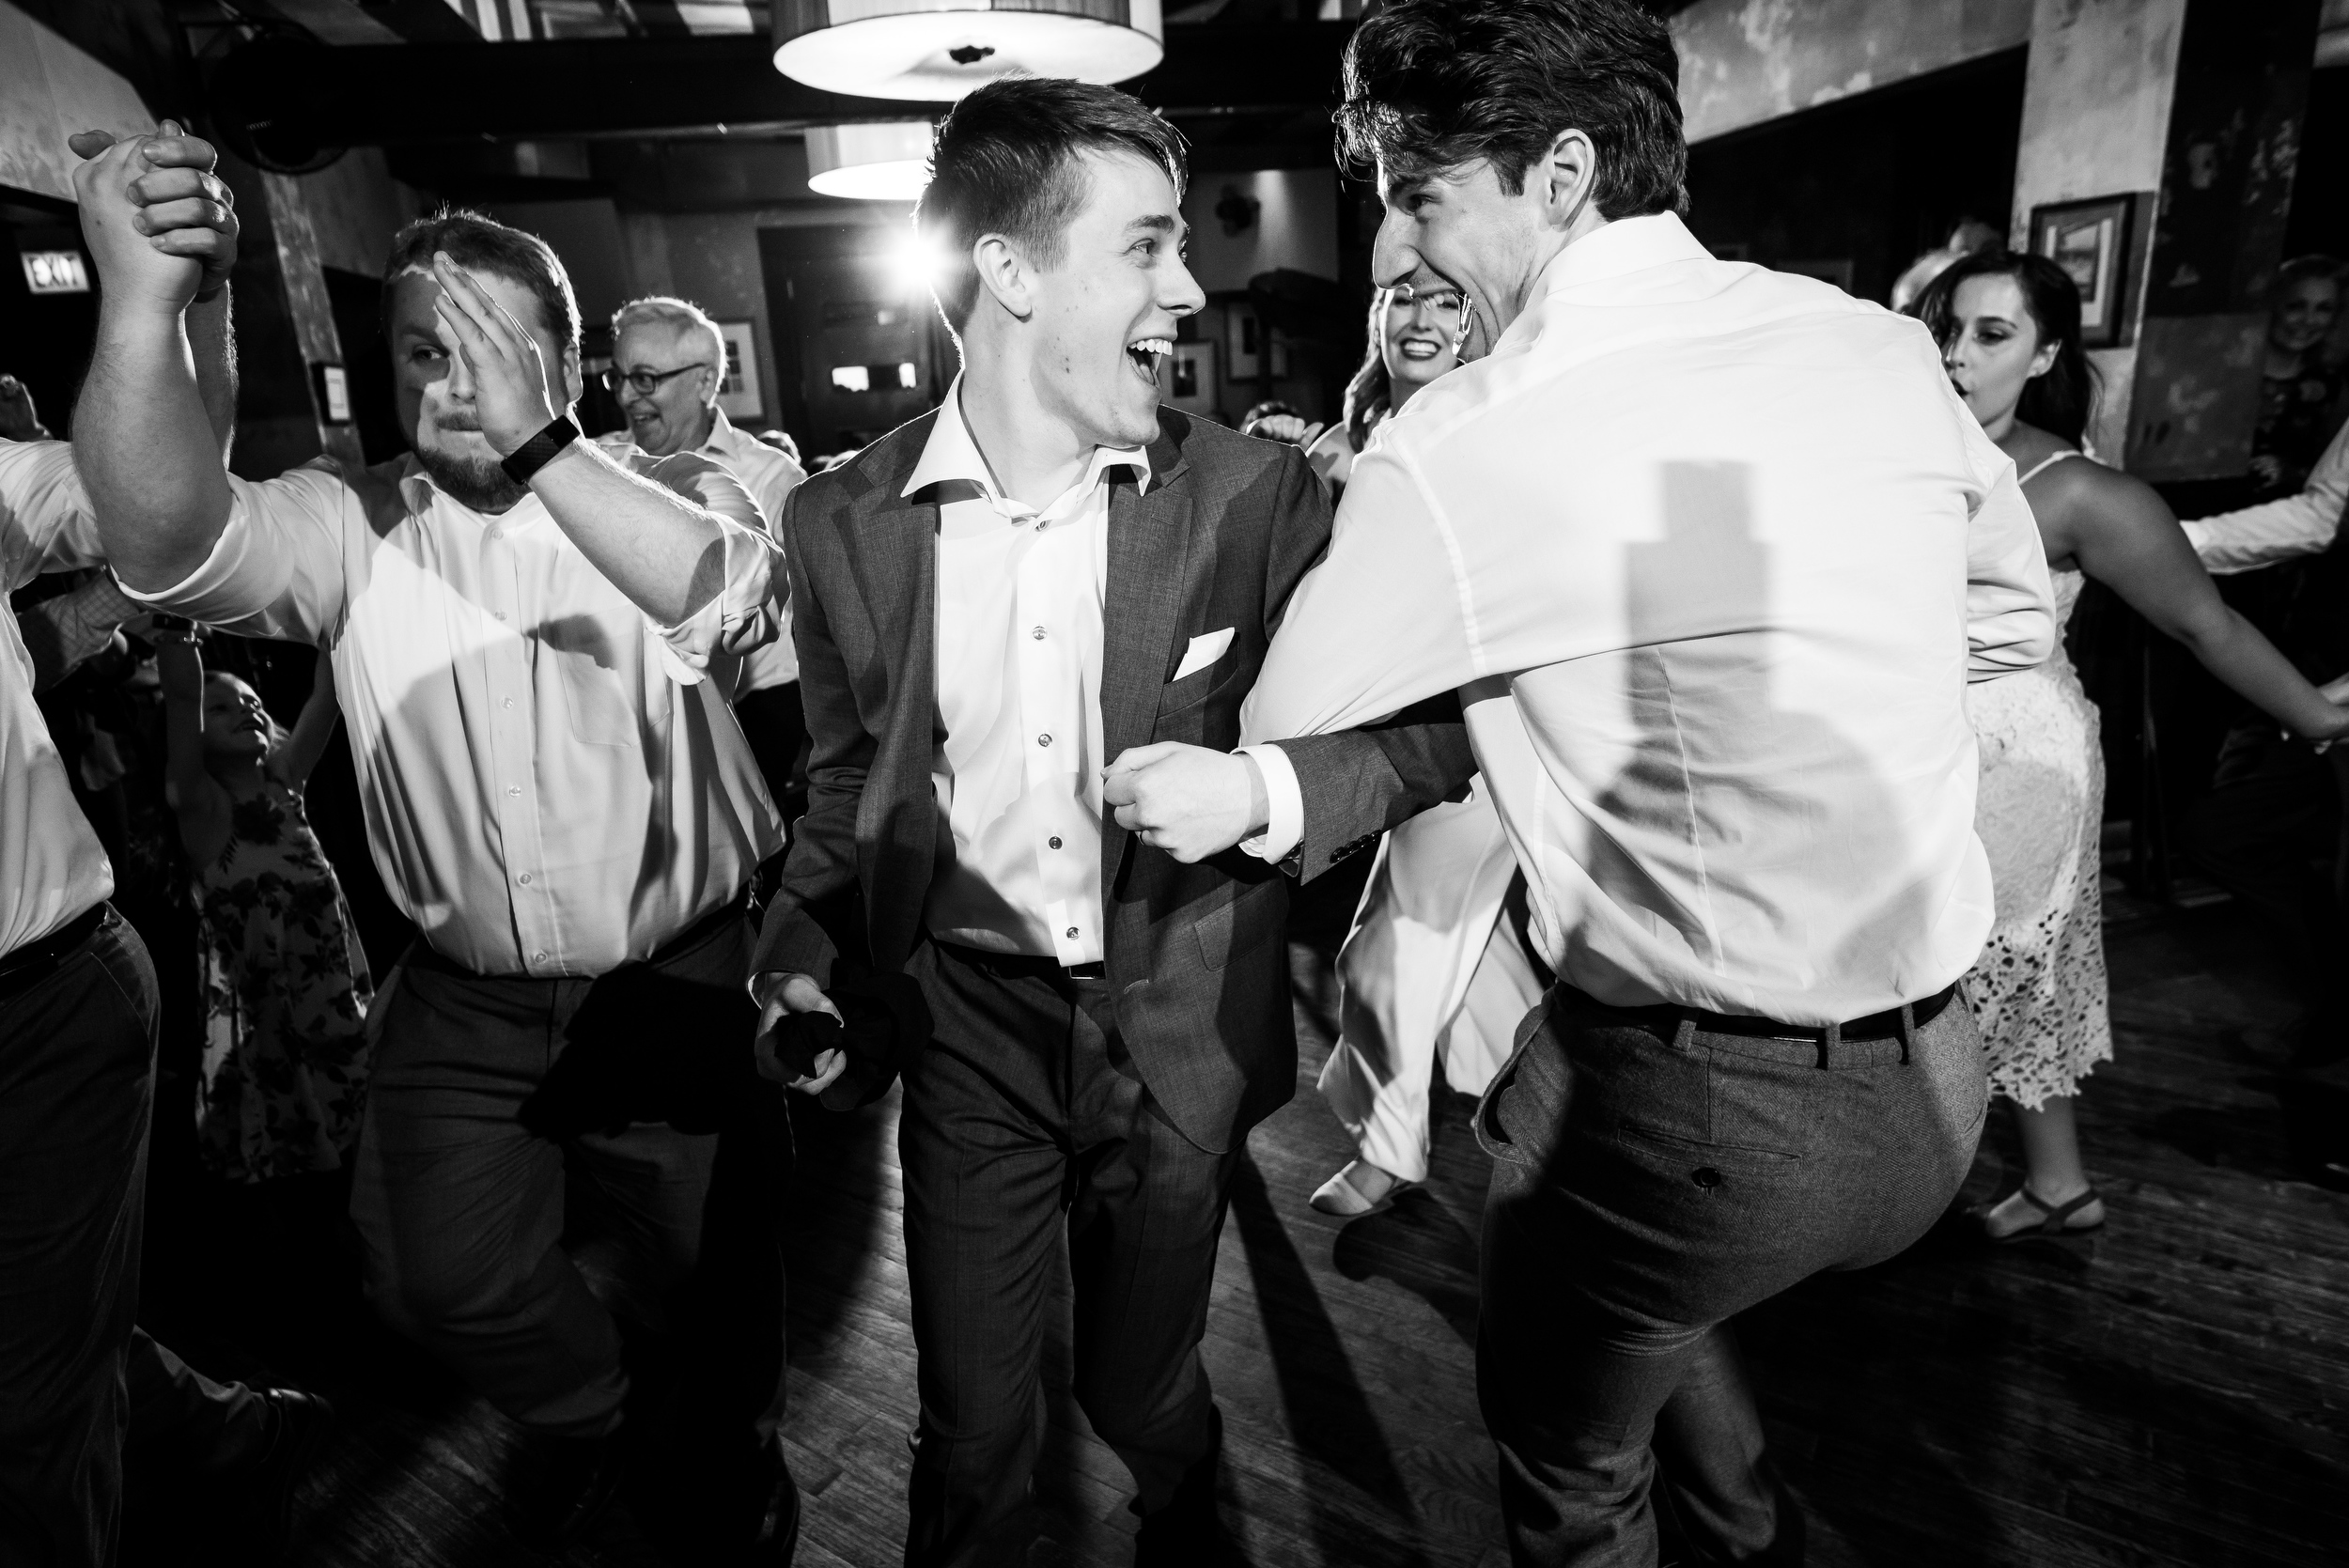 Black and white wedding dancing photos: Carnivale Chicago wedding captured by J Brown Photography